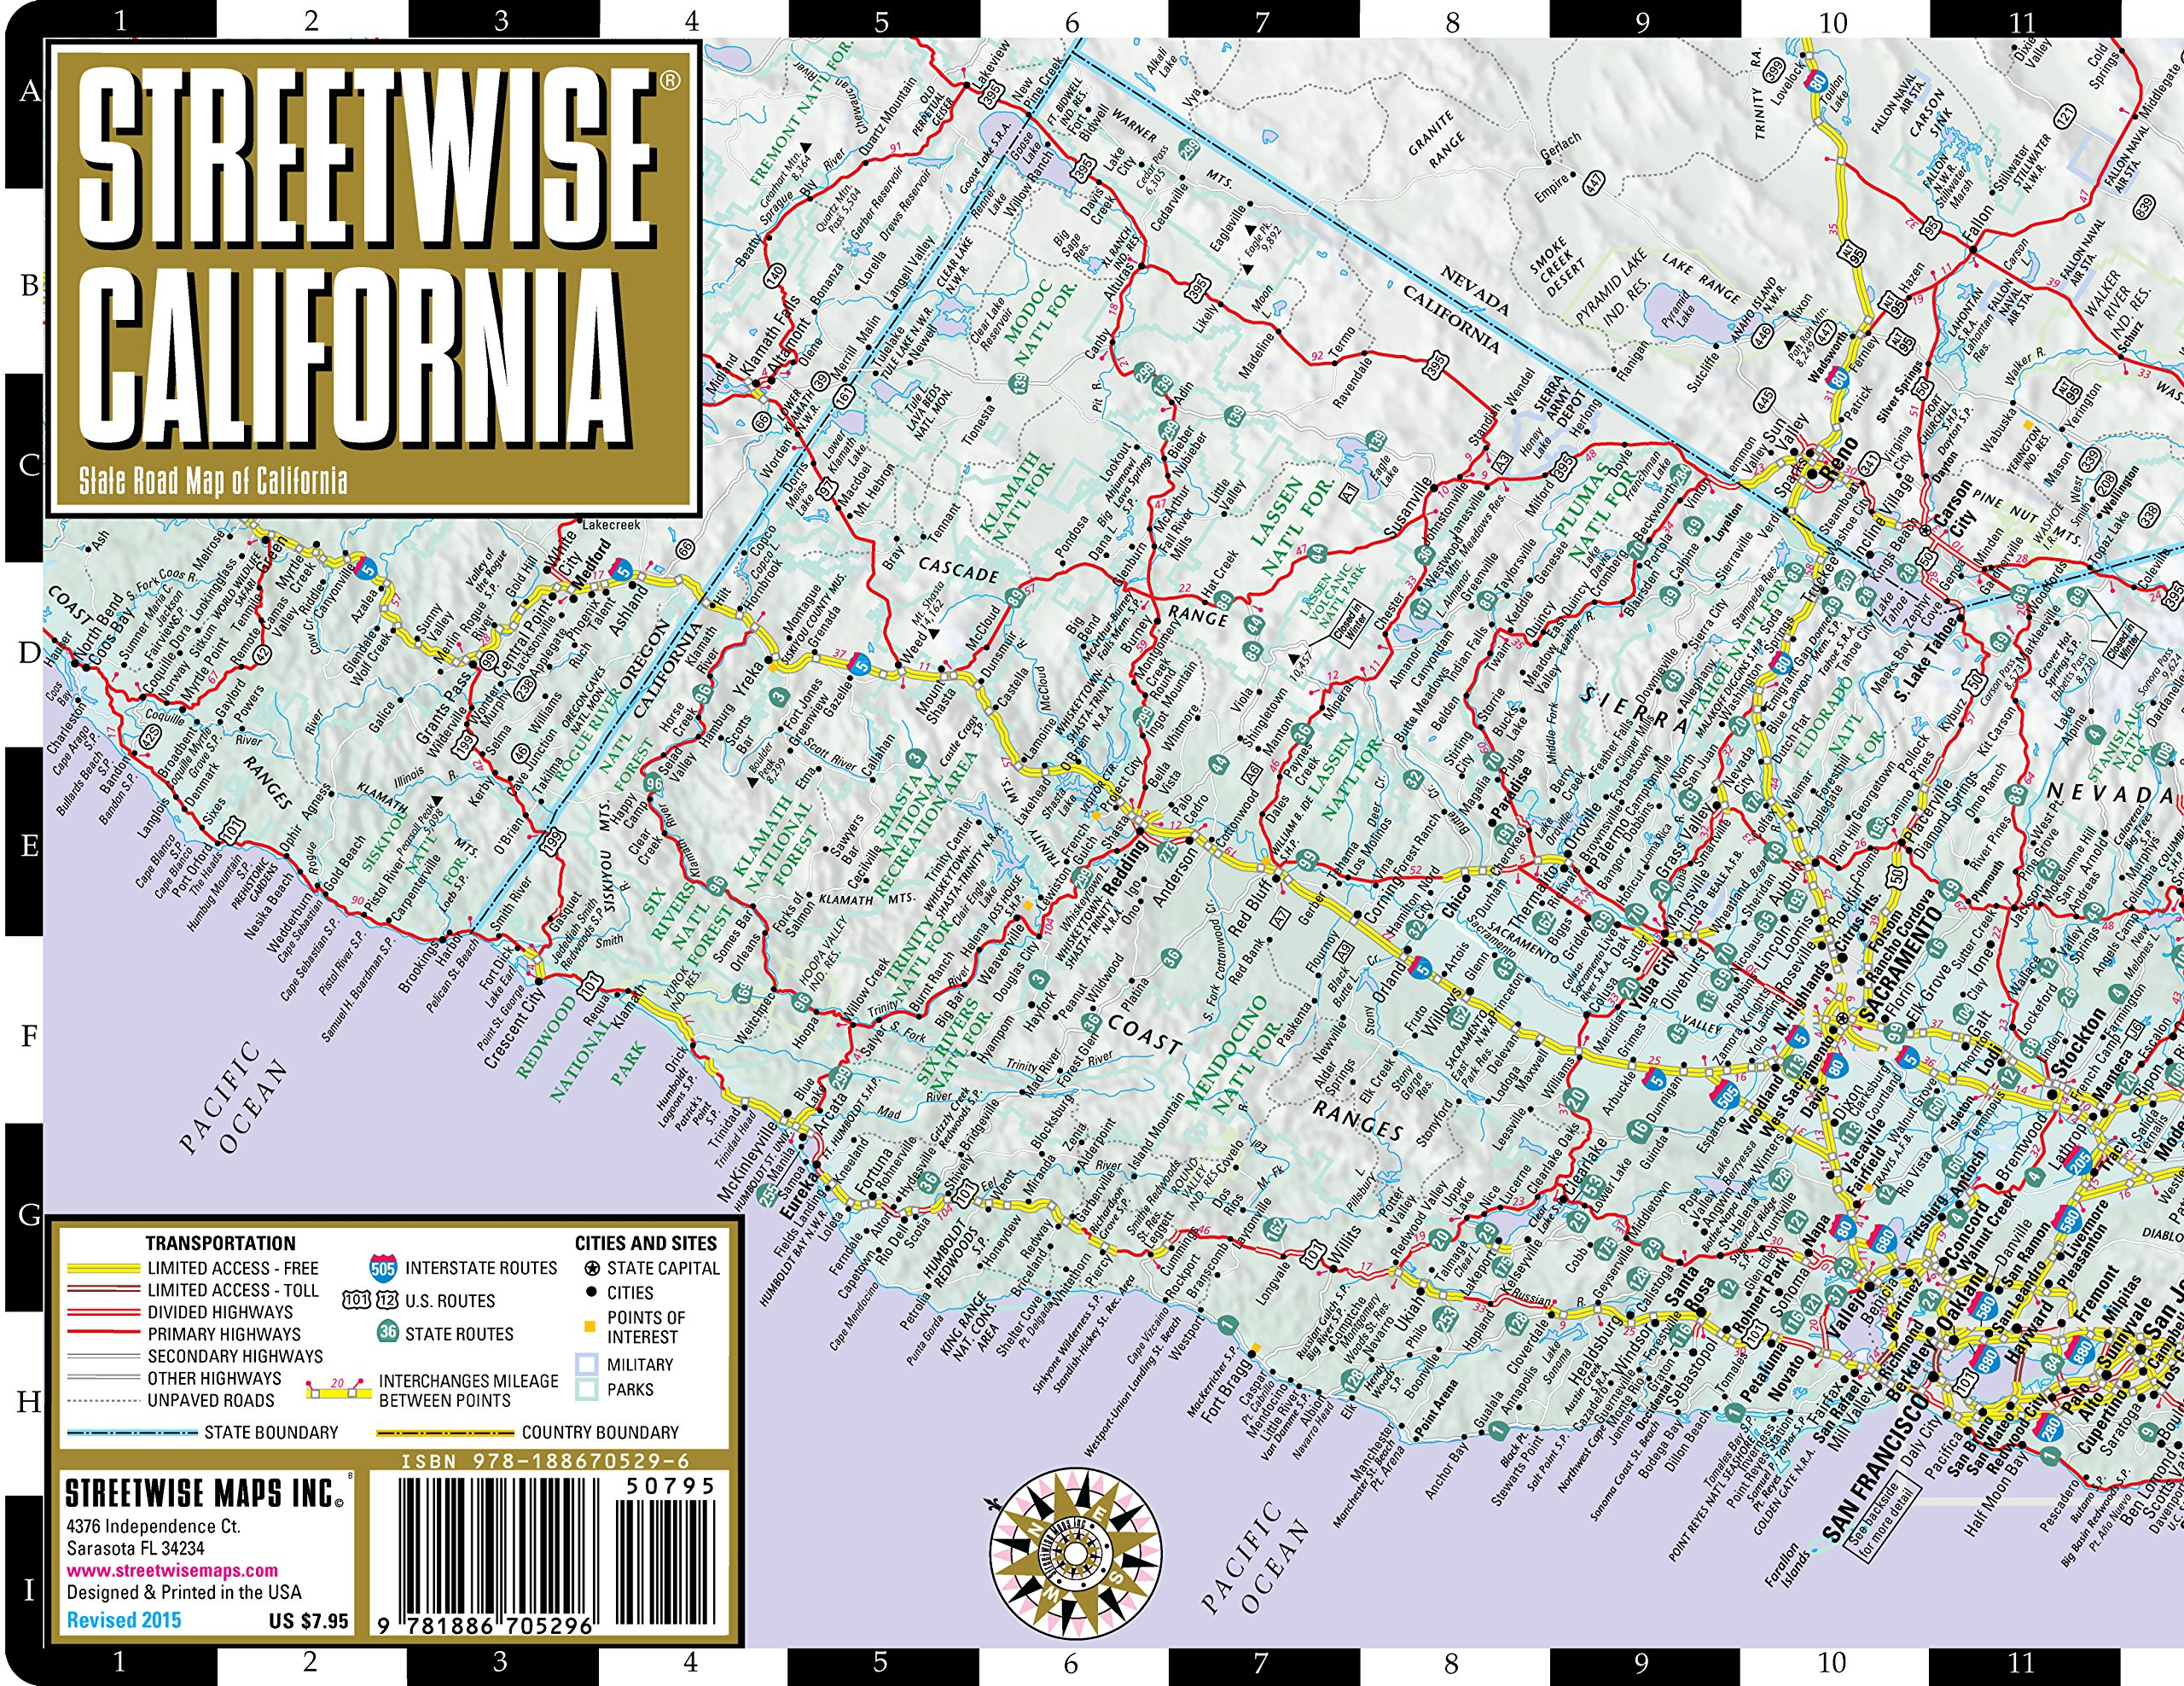 Streetwise California Map Laminated State Road Map Of California Streetwise Maps 9781886705296 Amazon Com Books